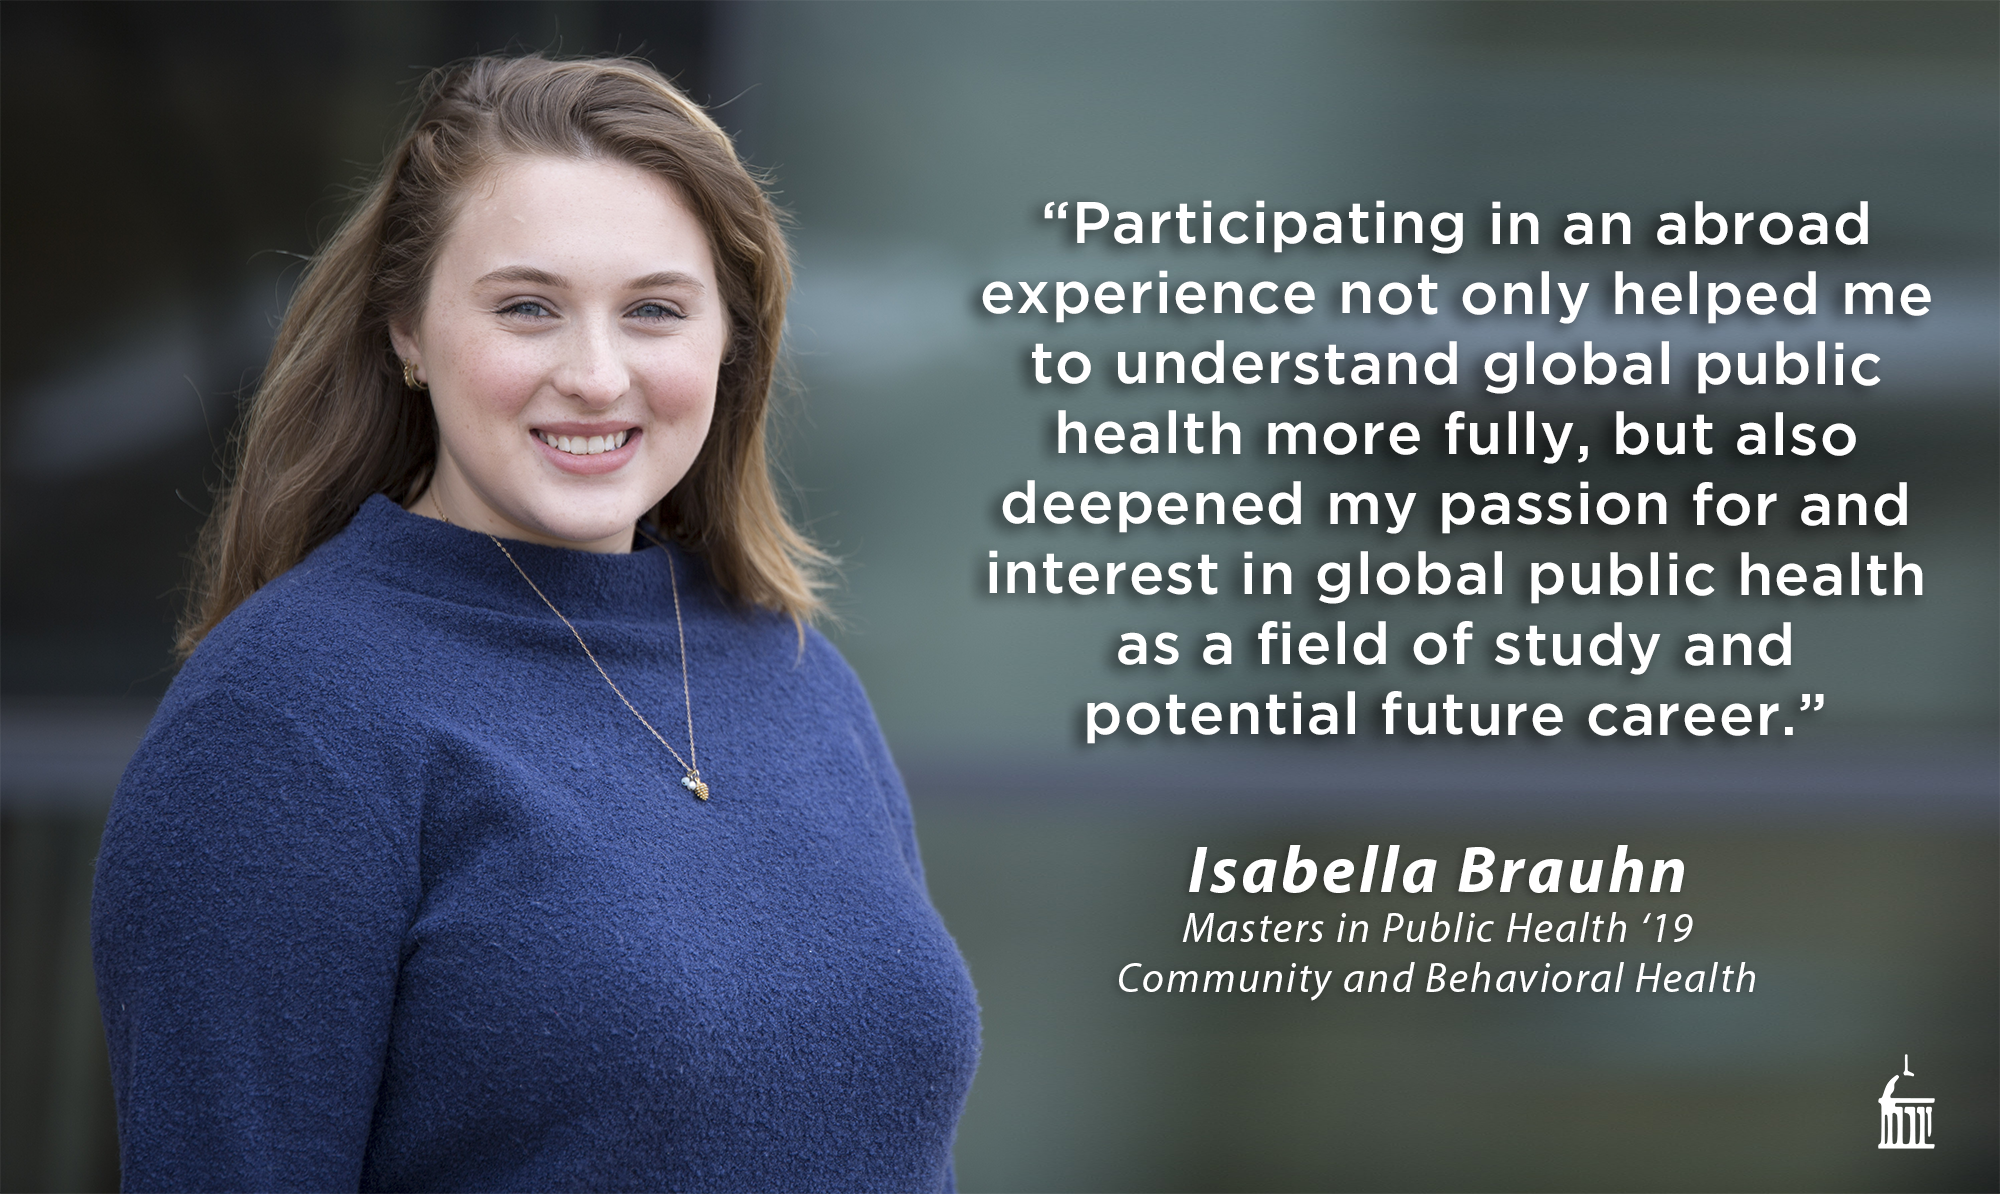 Participating in an abroad experience not only helped me to understand global public health more fully, but also deepened my passion for and interest in global public health as a field of study and potential future career. (Isabella Brauhn, MPH 2019 Community and Behavioral Health)